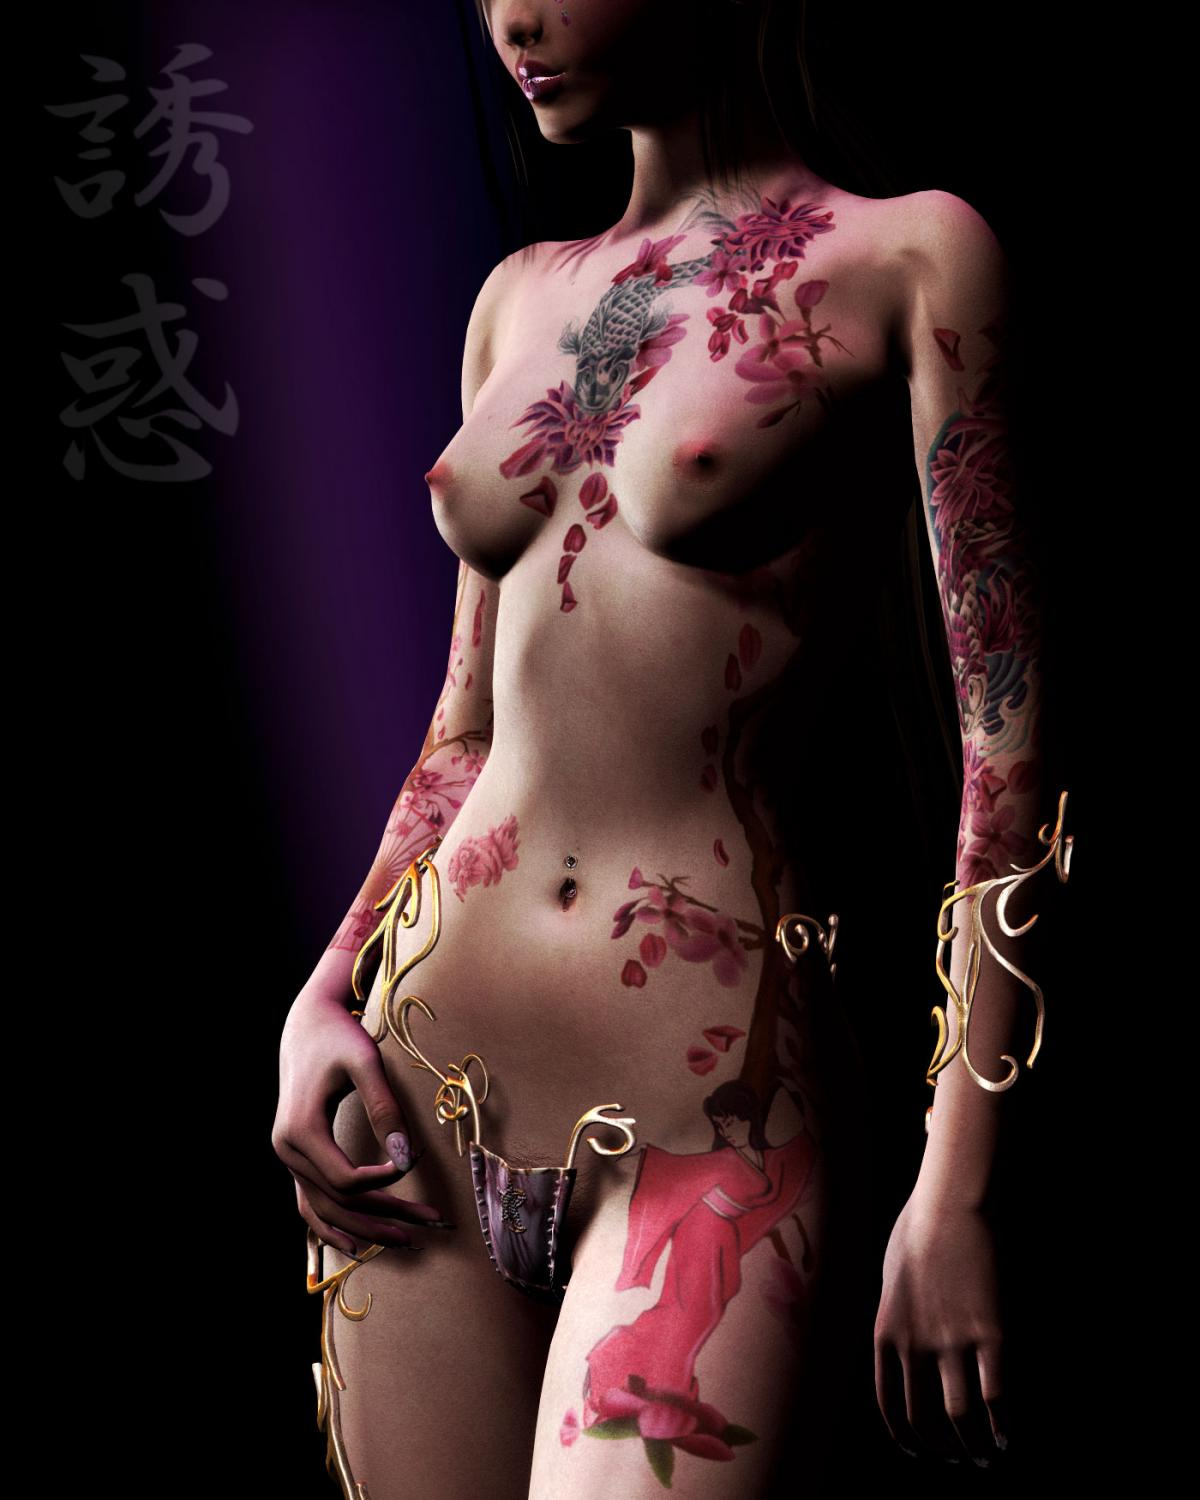 has [lenty of tattoos.most